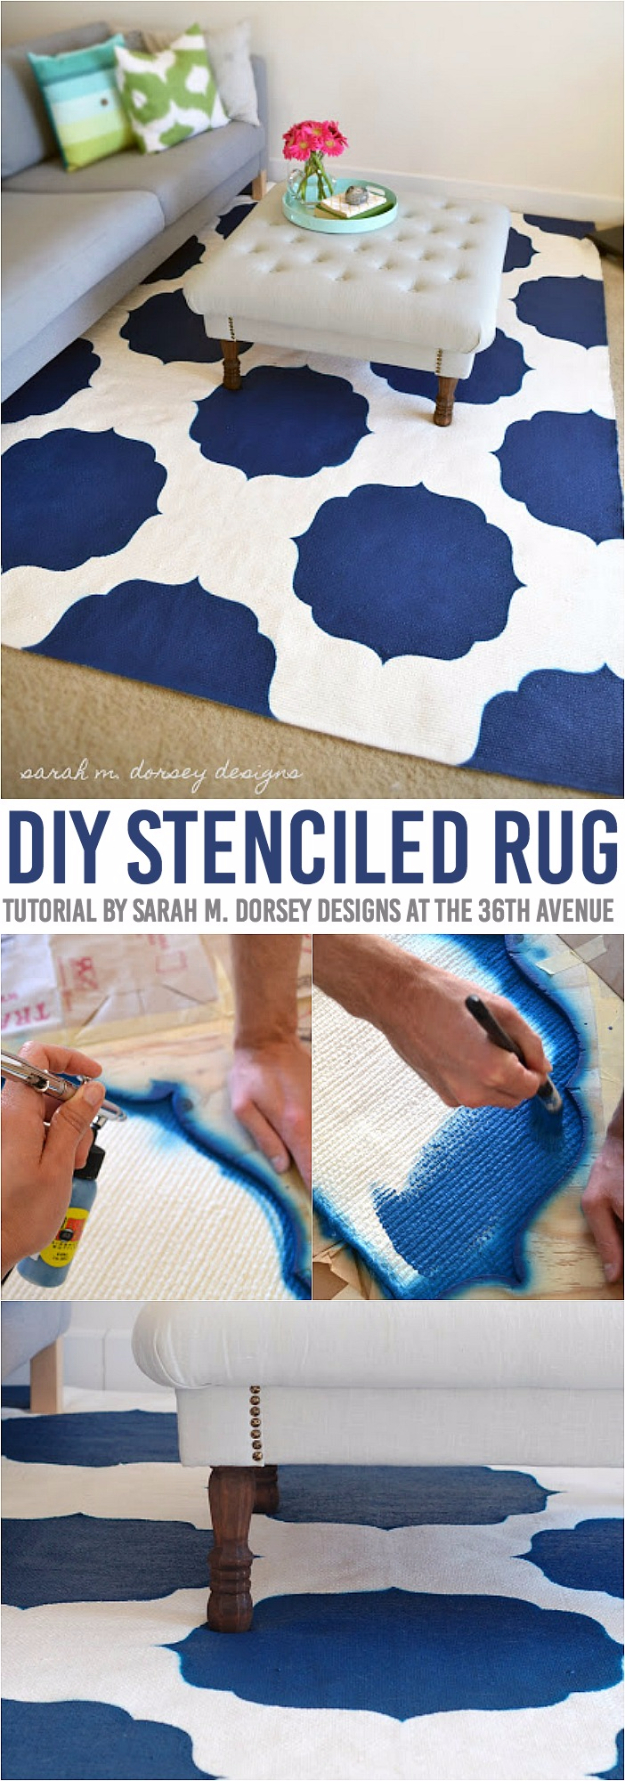 Easy DIY Rugs and Handmade Rug Making Project Ideas - DIY Stenciled Morrocan Rug - Simple Home Decor for Your Floors, Fabric, Area, Painting Ideas, Rag Rugs, No Sew, Dropcloth and Braided Rug Tutorials